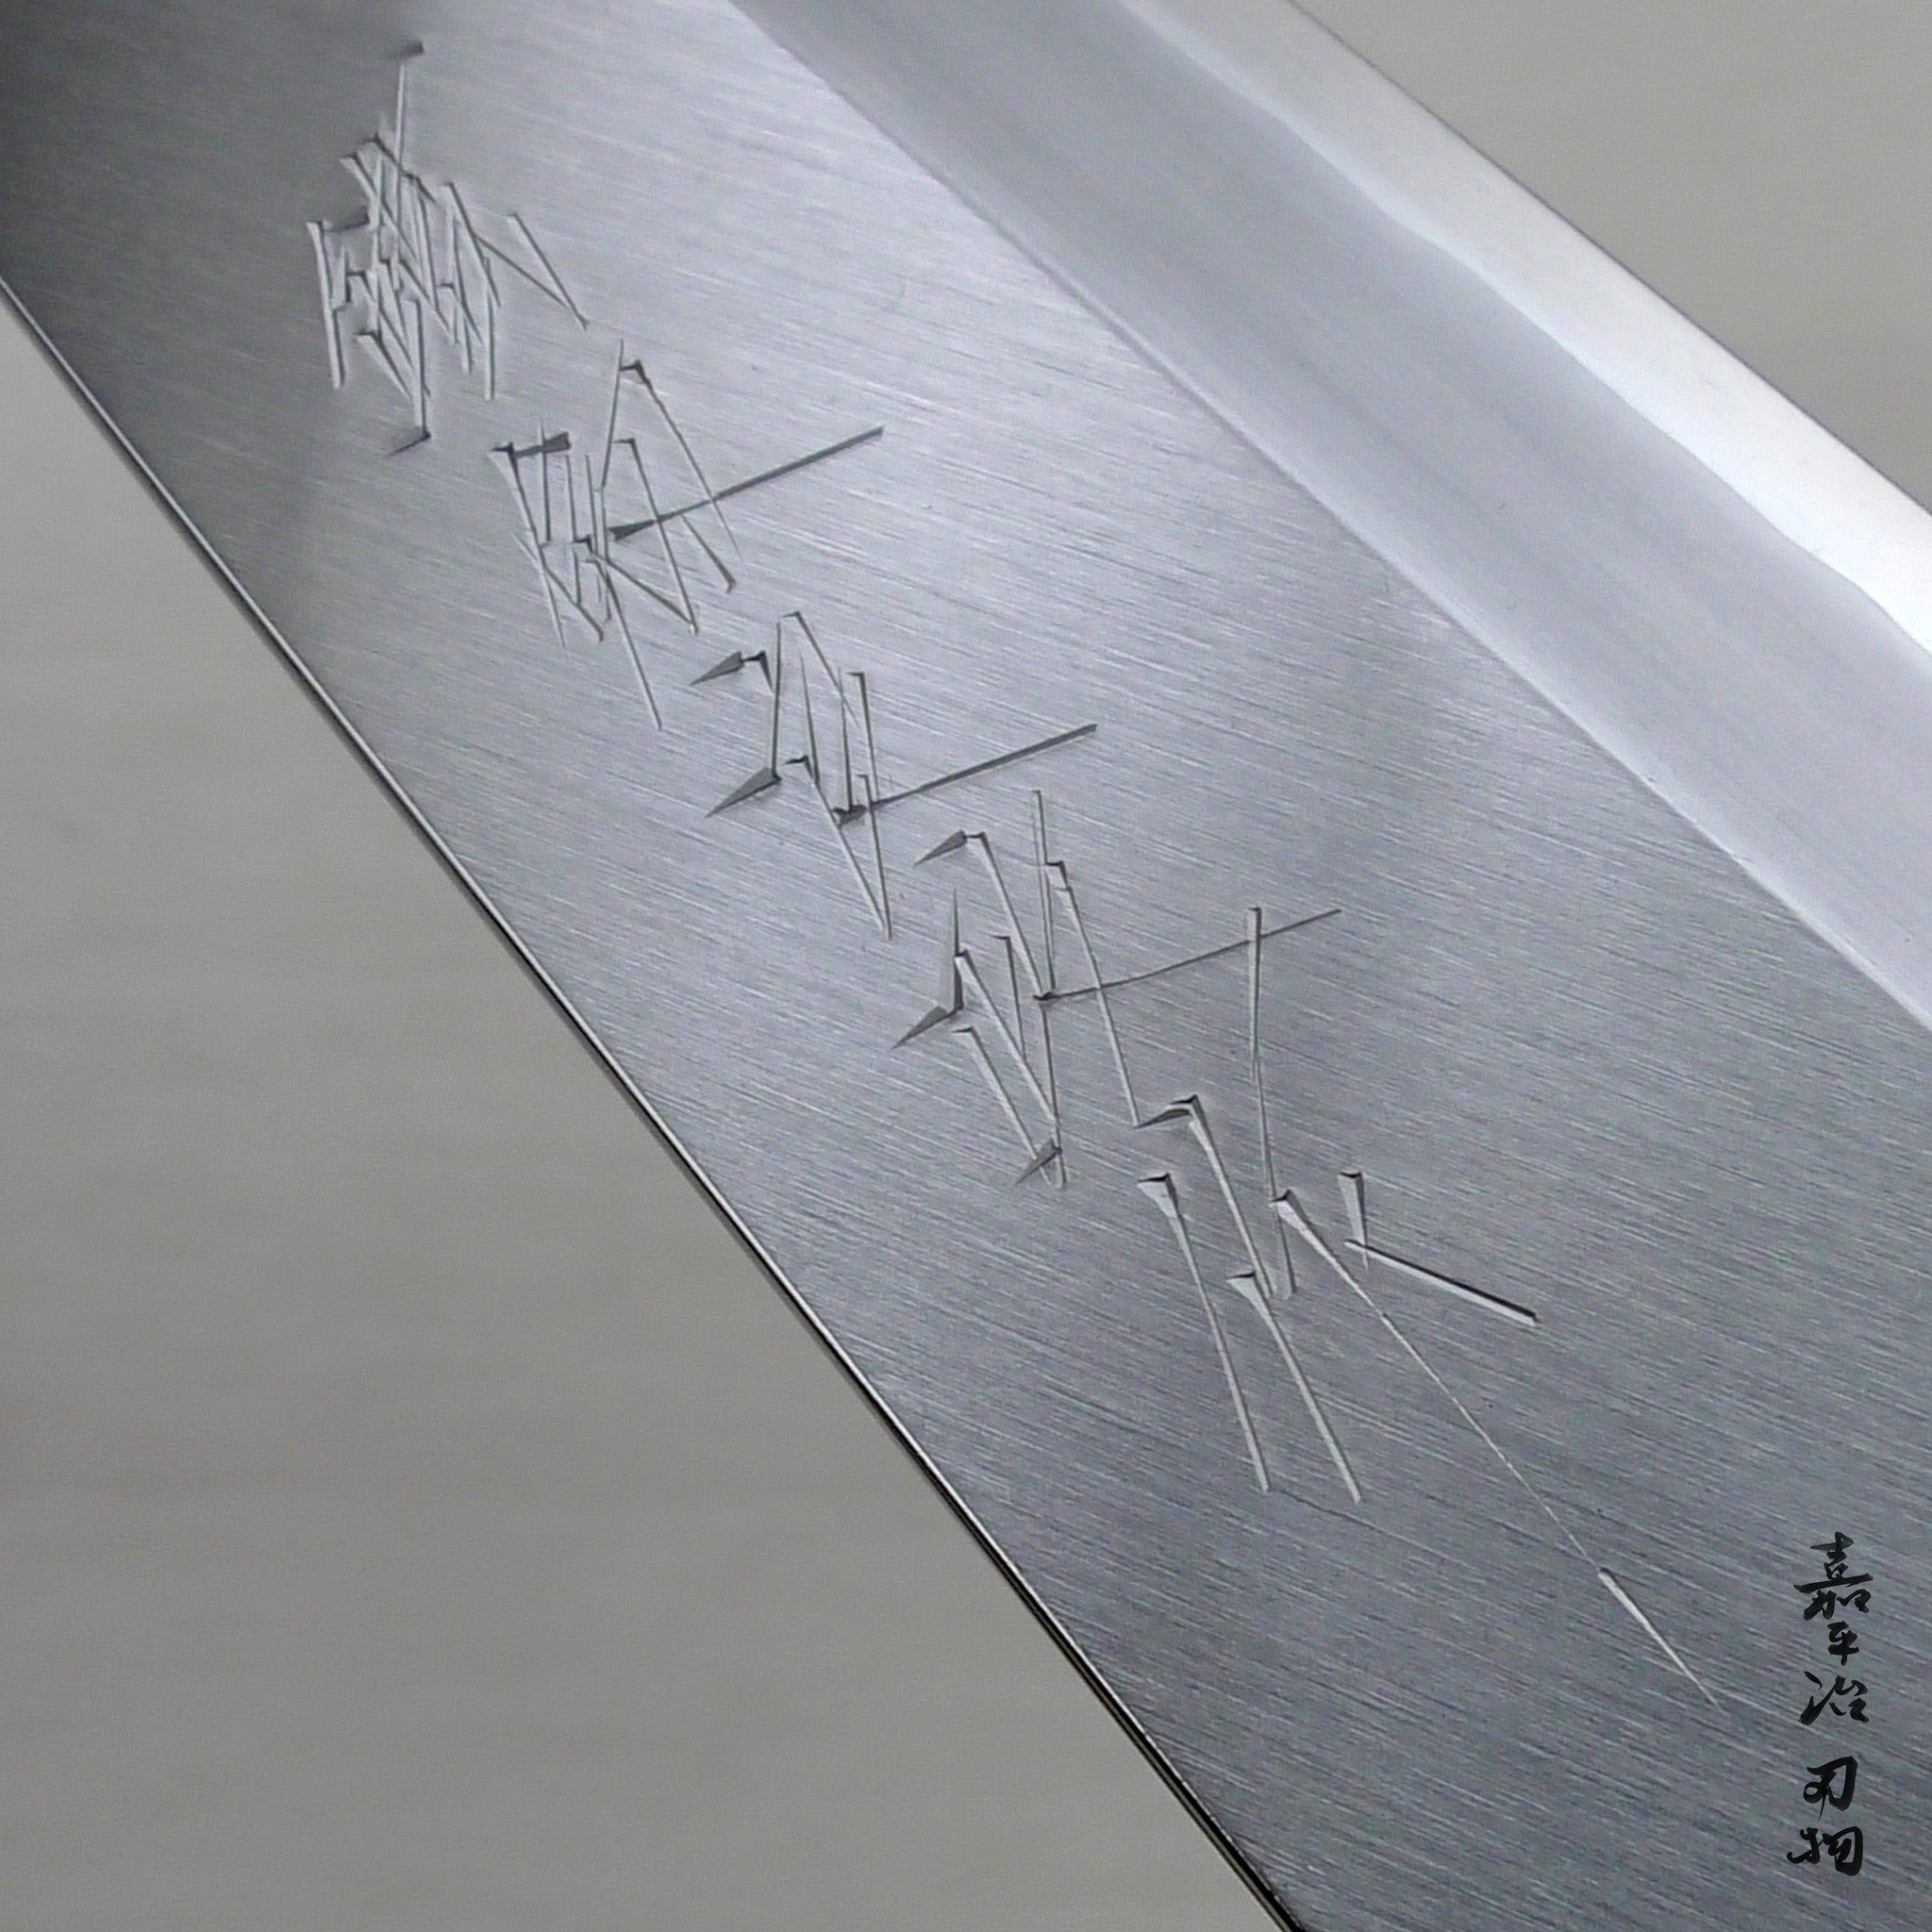 Tekken Yoshimasa TYGK VG-1 Gold Petty Japanese Knife